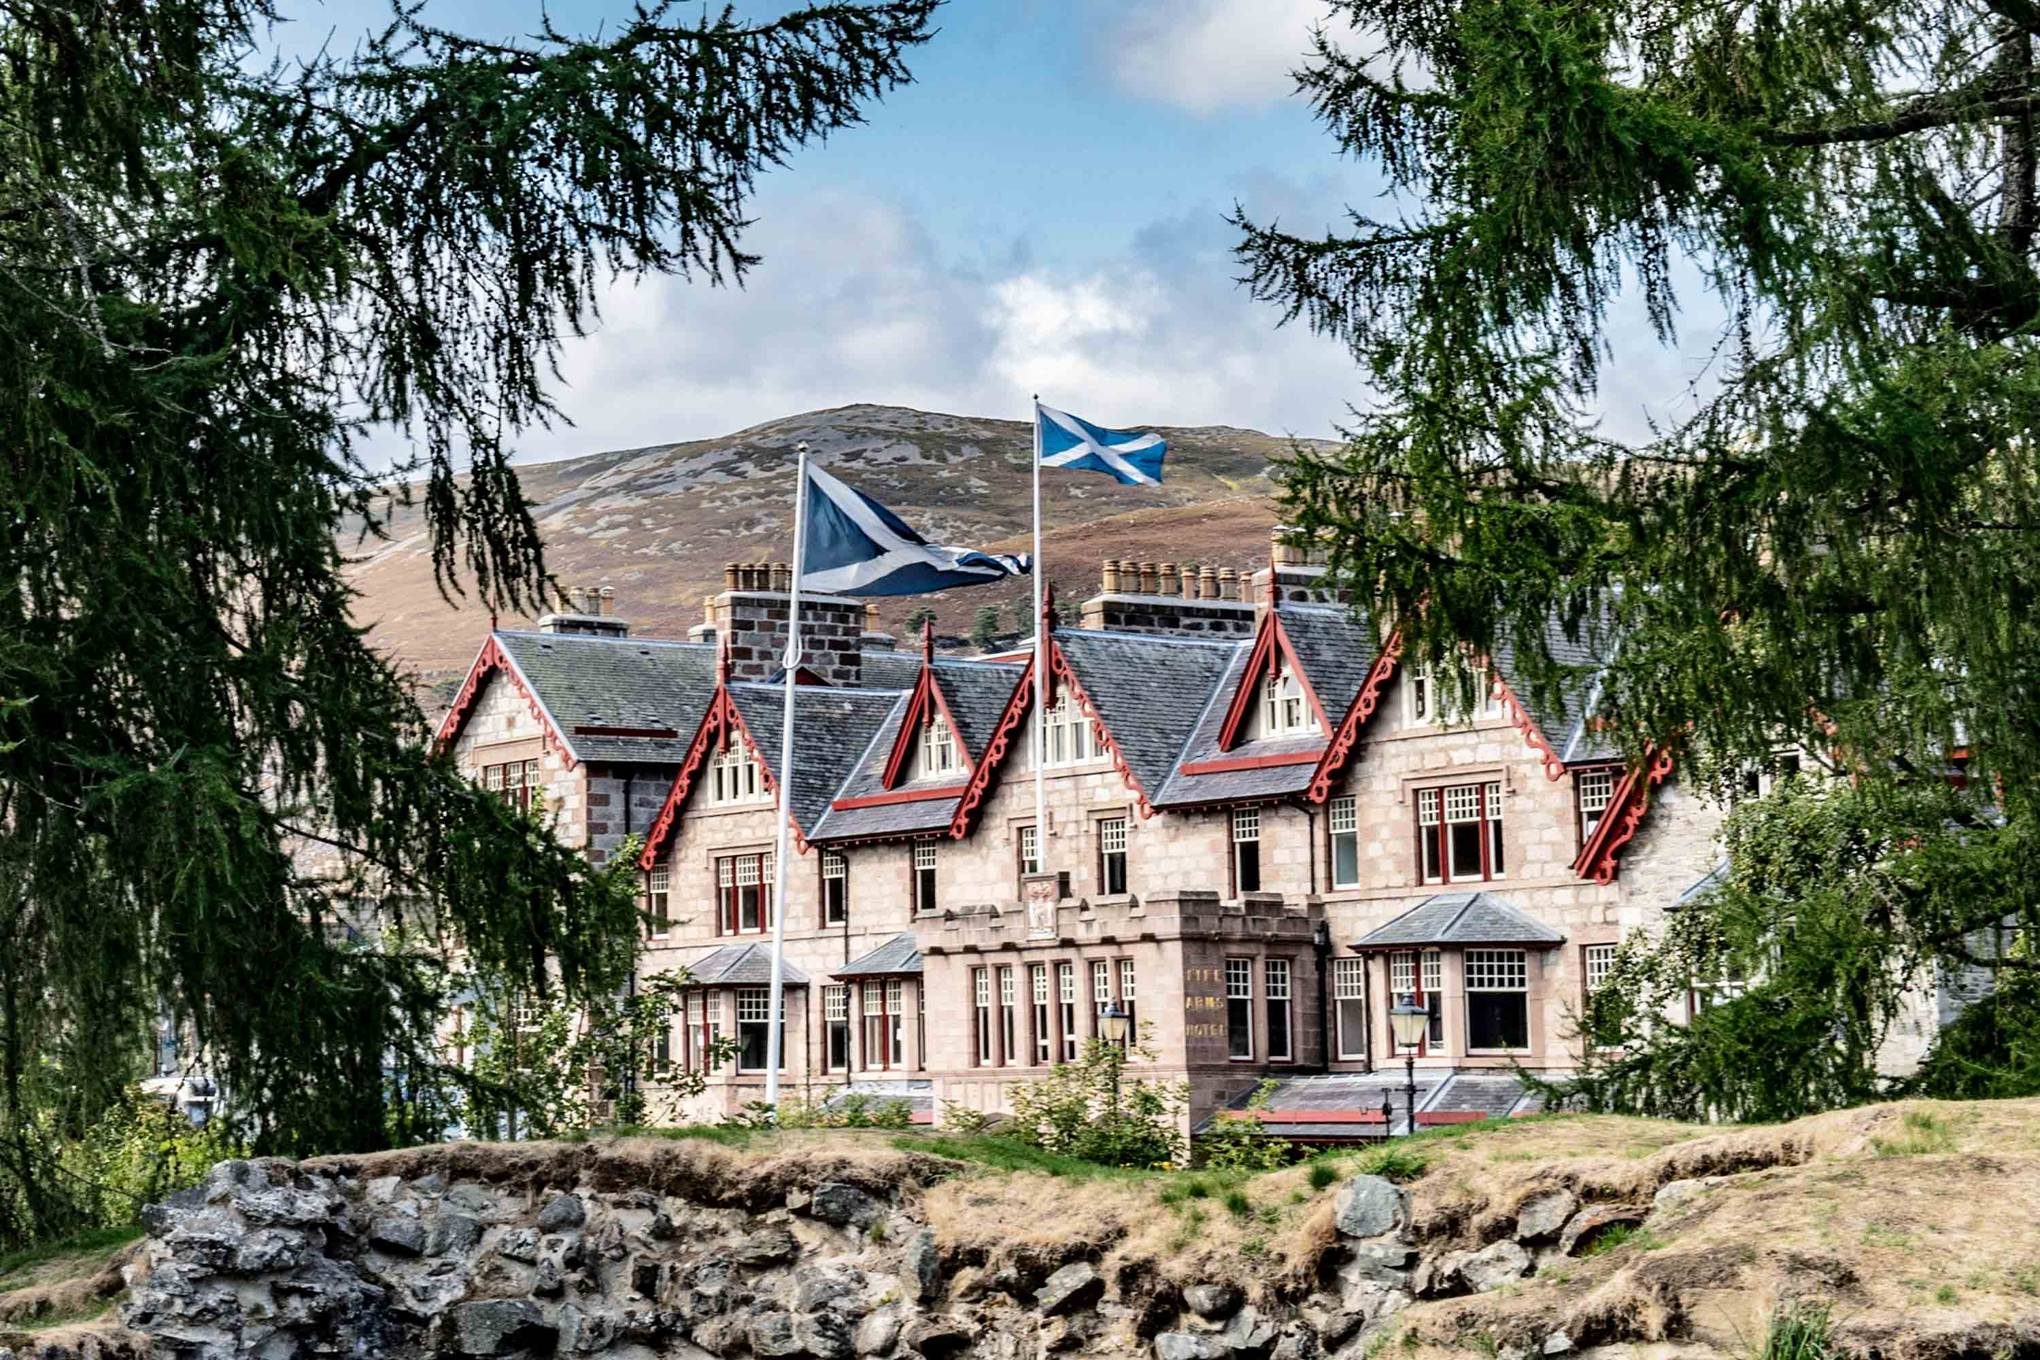 Hotels in Scotland: the 22 best